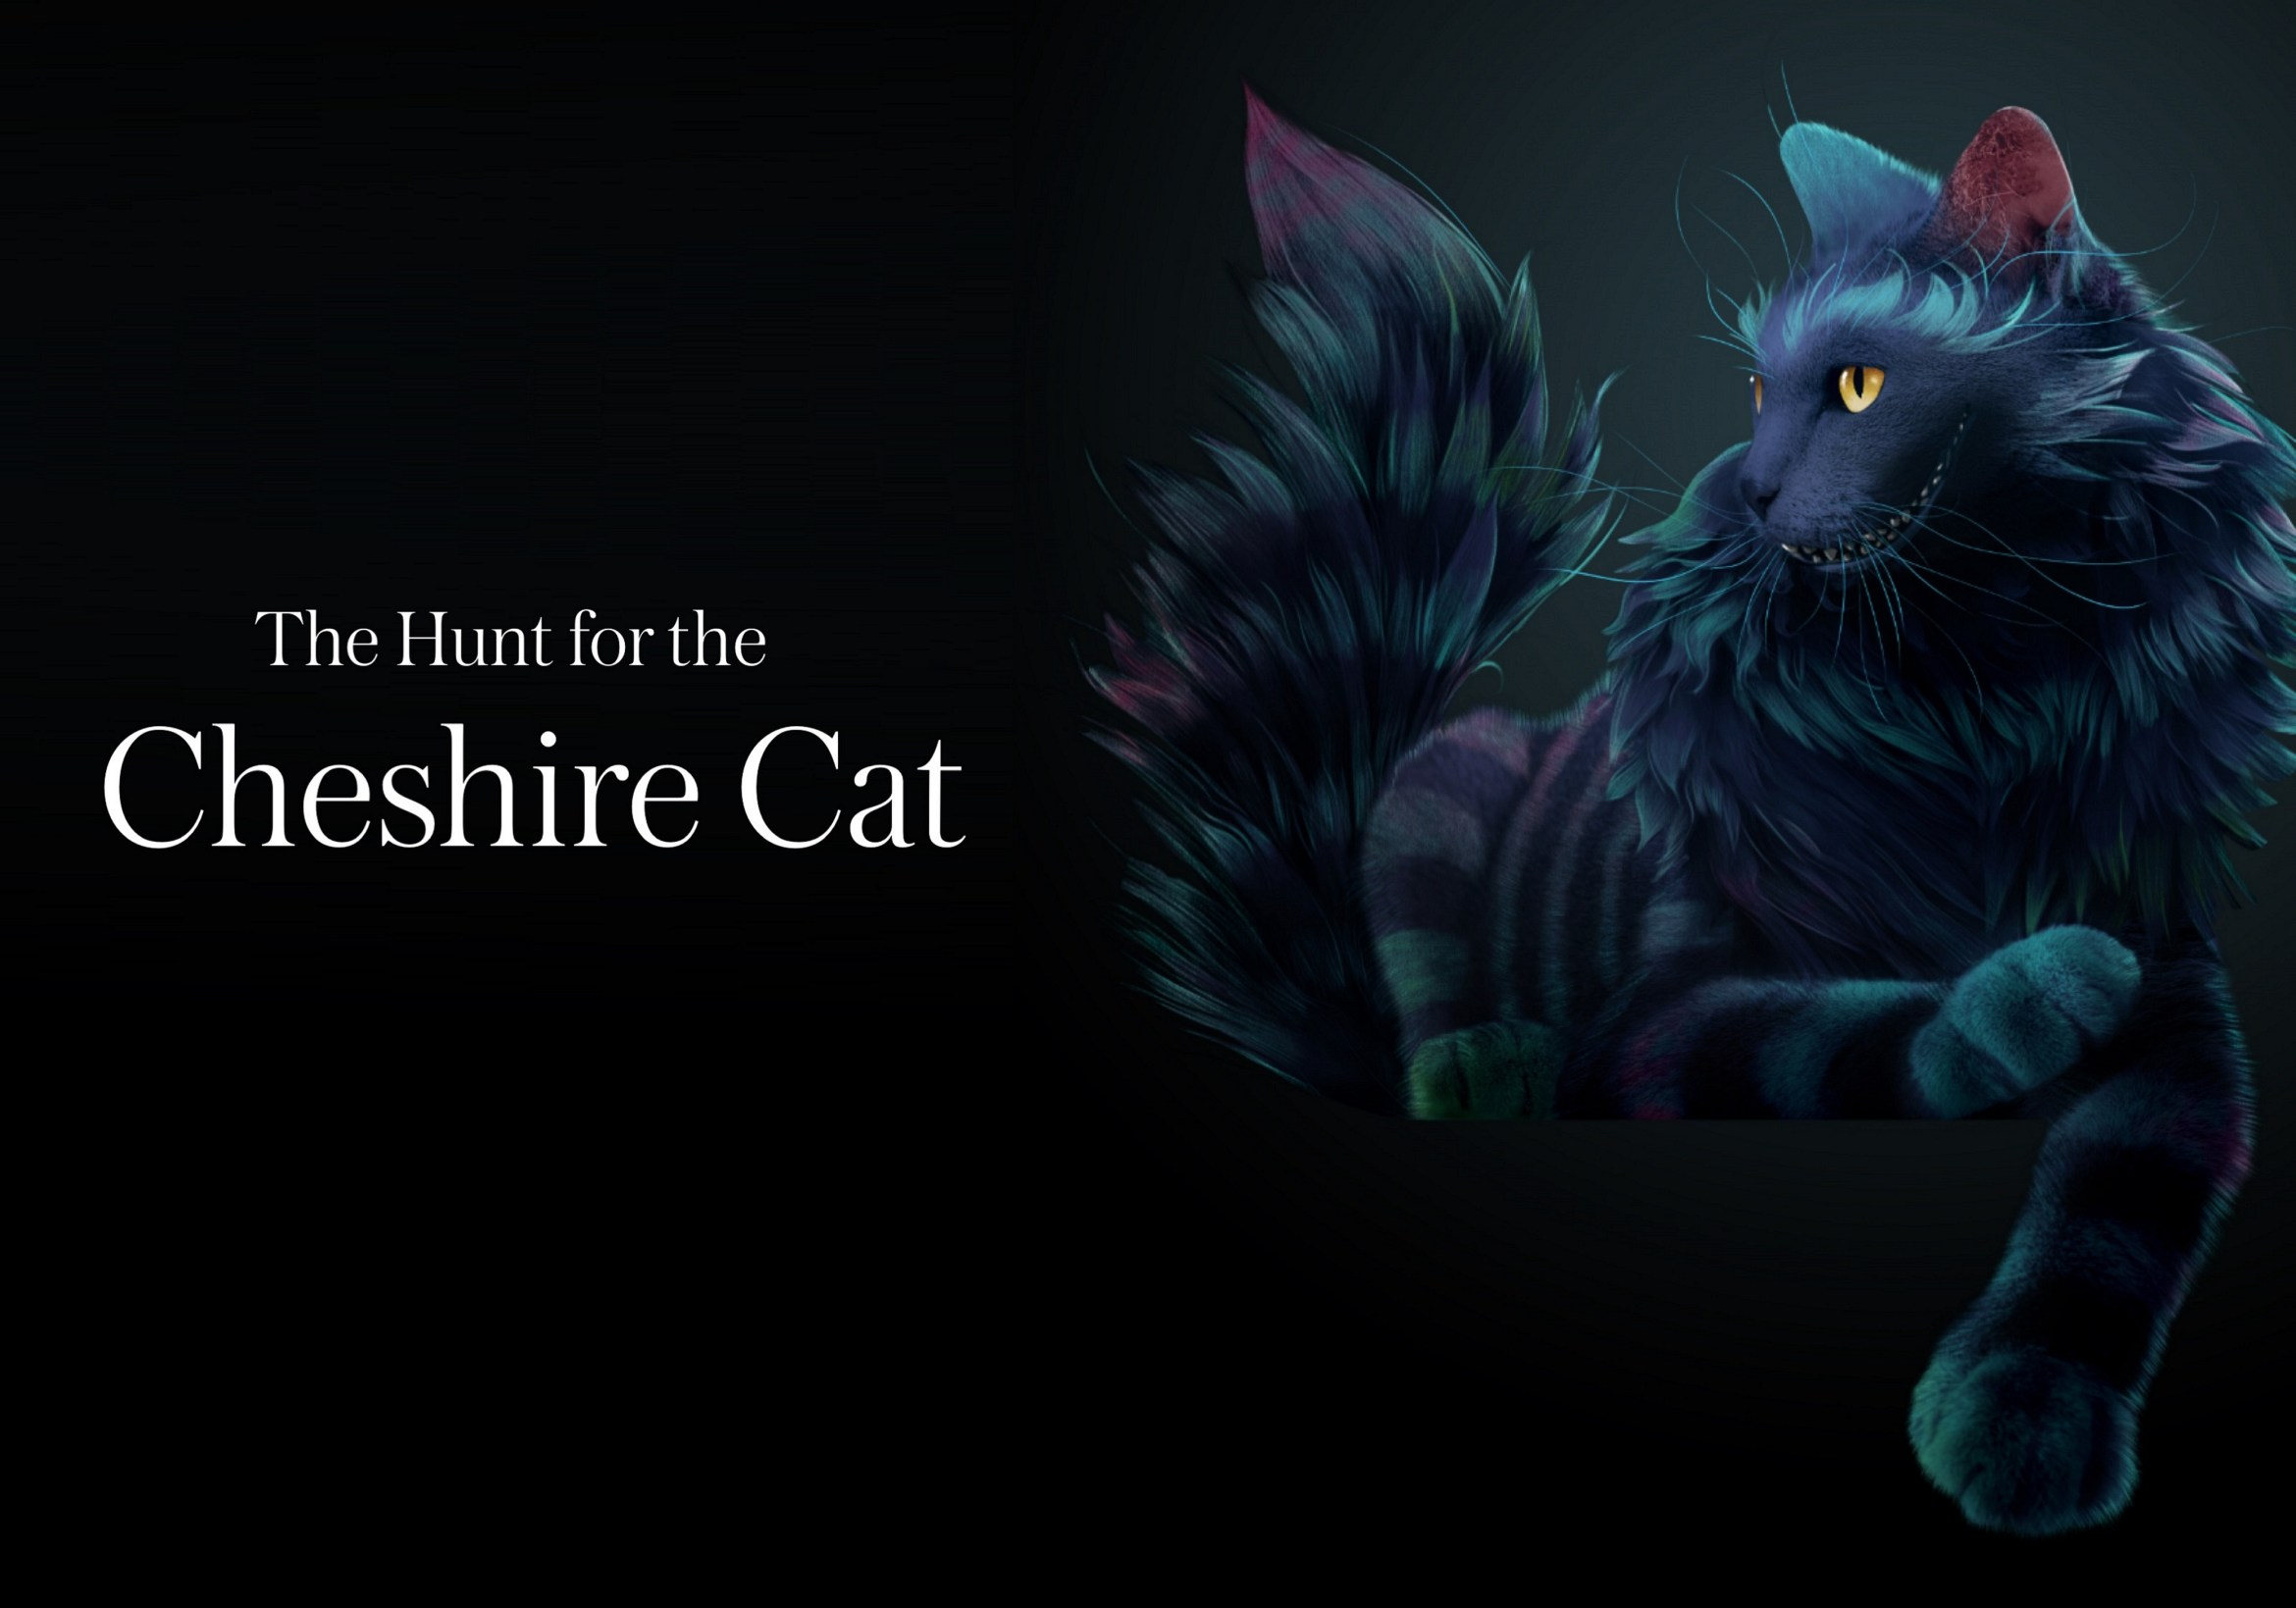 HiddenCity-The-Hunt-for-the-Cheshire-Cat-The-Cheshire-Cat.jpg